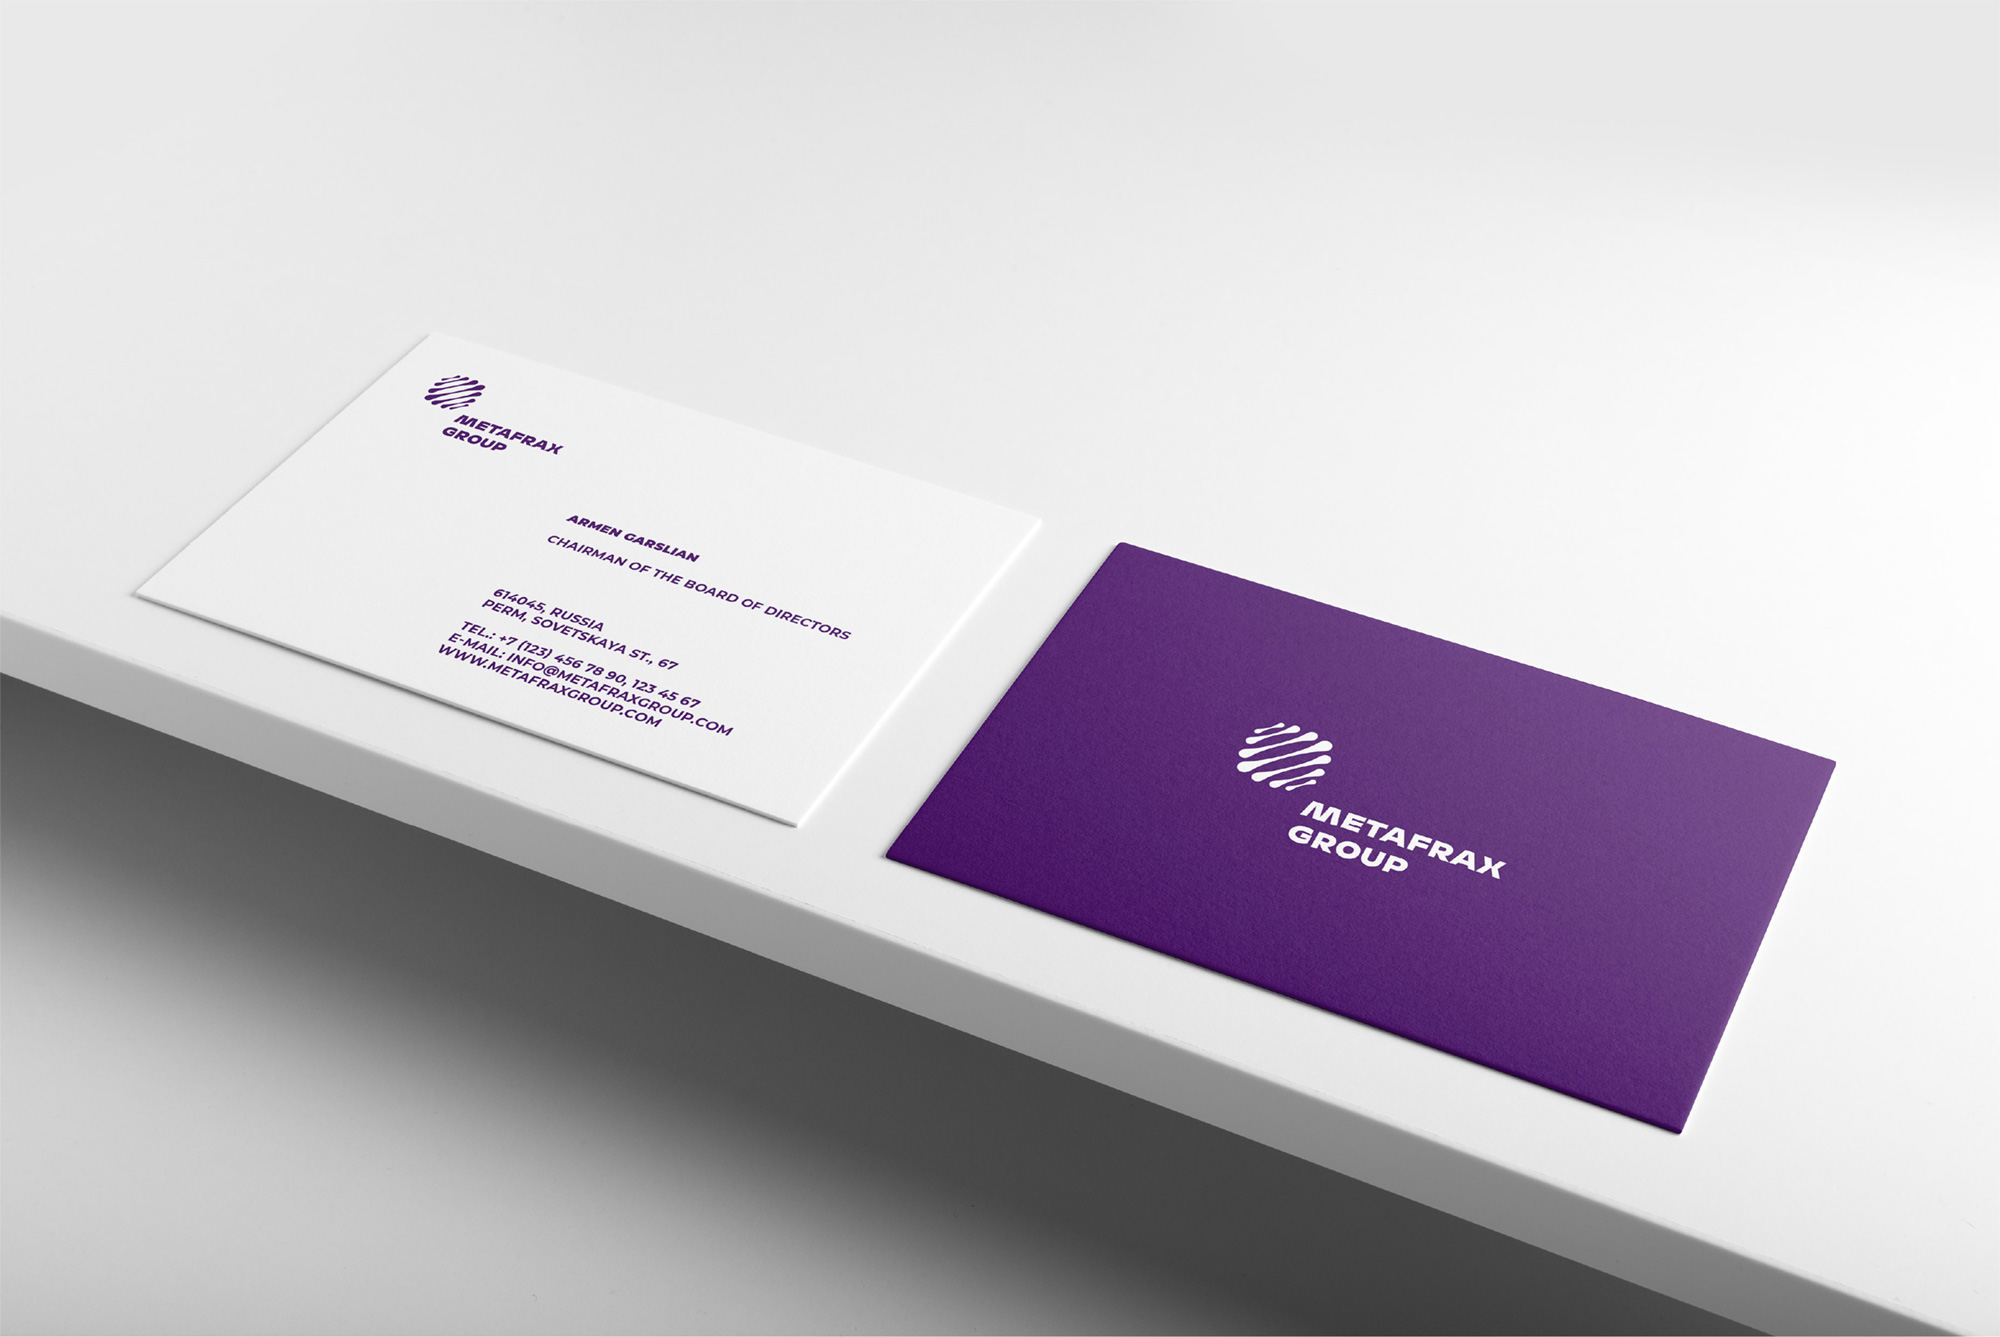 New Logo and Identity for Metafrax by Electric Brand Consultants